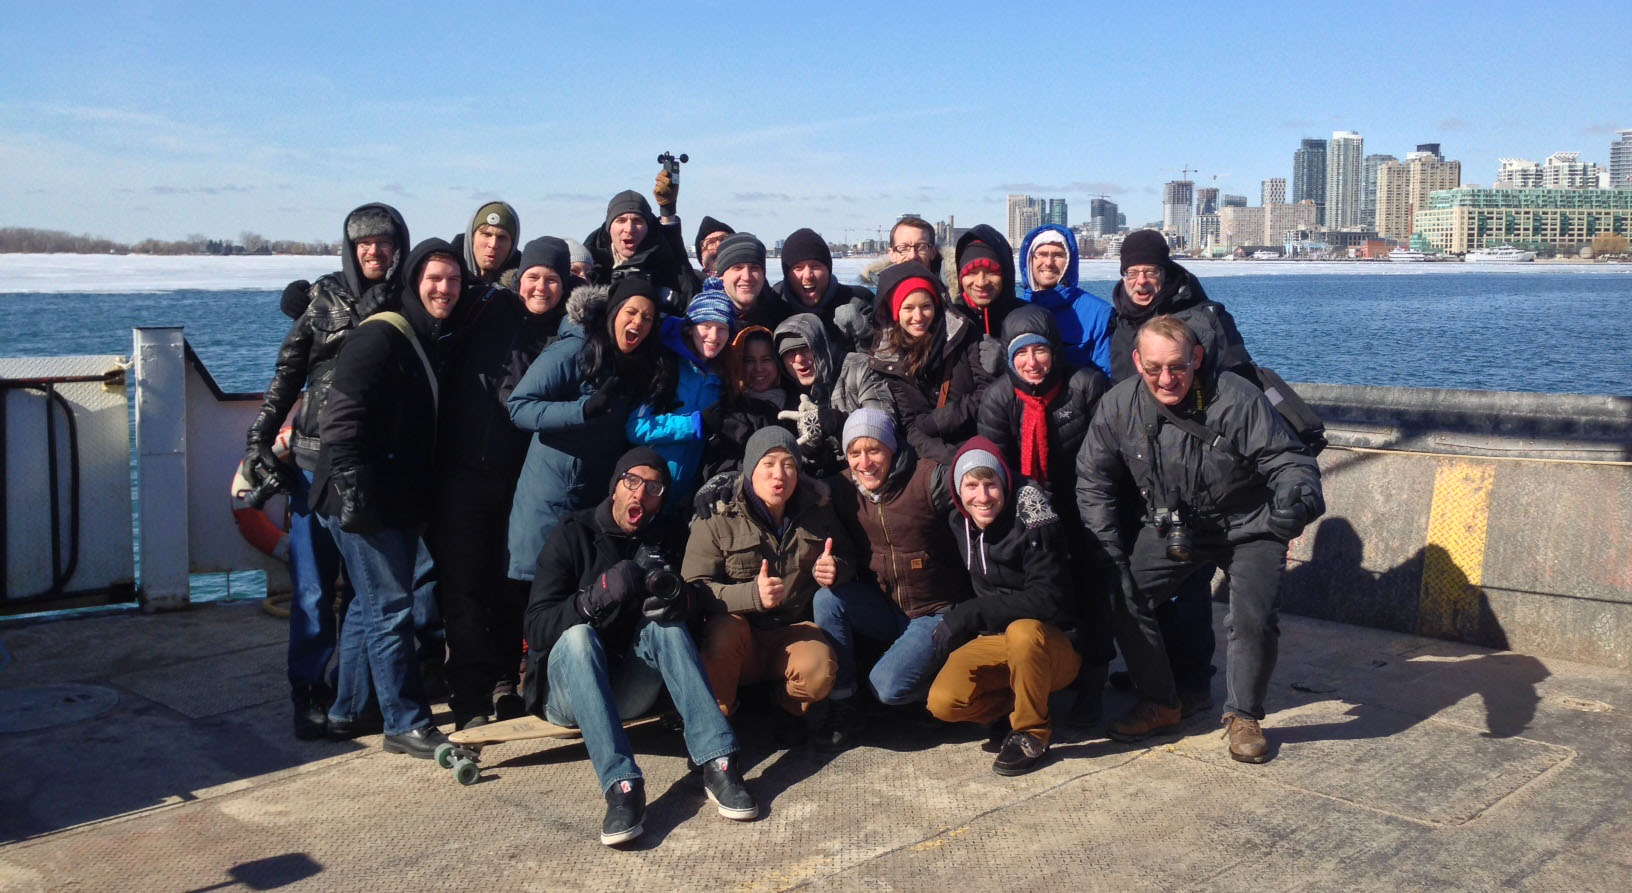 Our shoot day crew at the Toronto Island Ferry Docks.